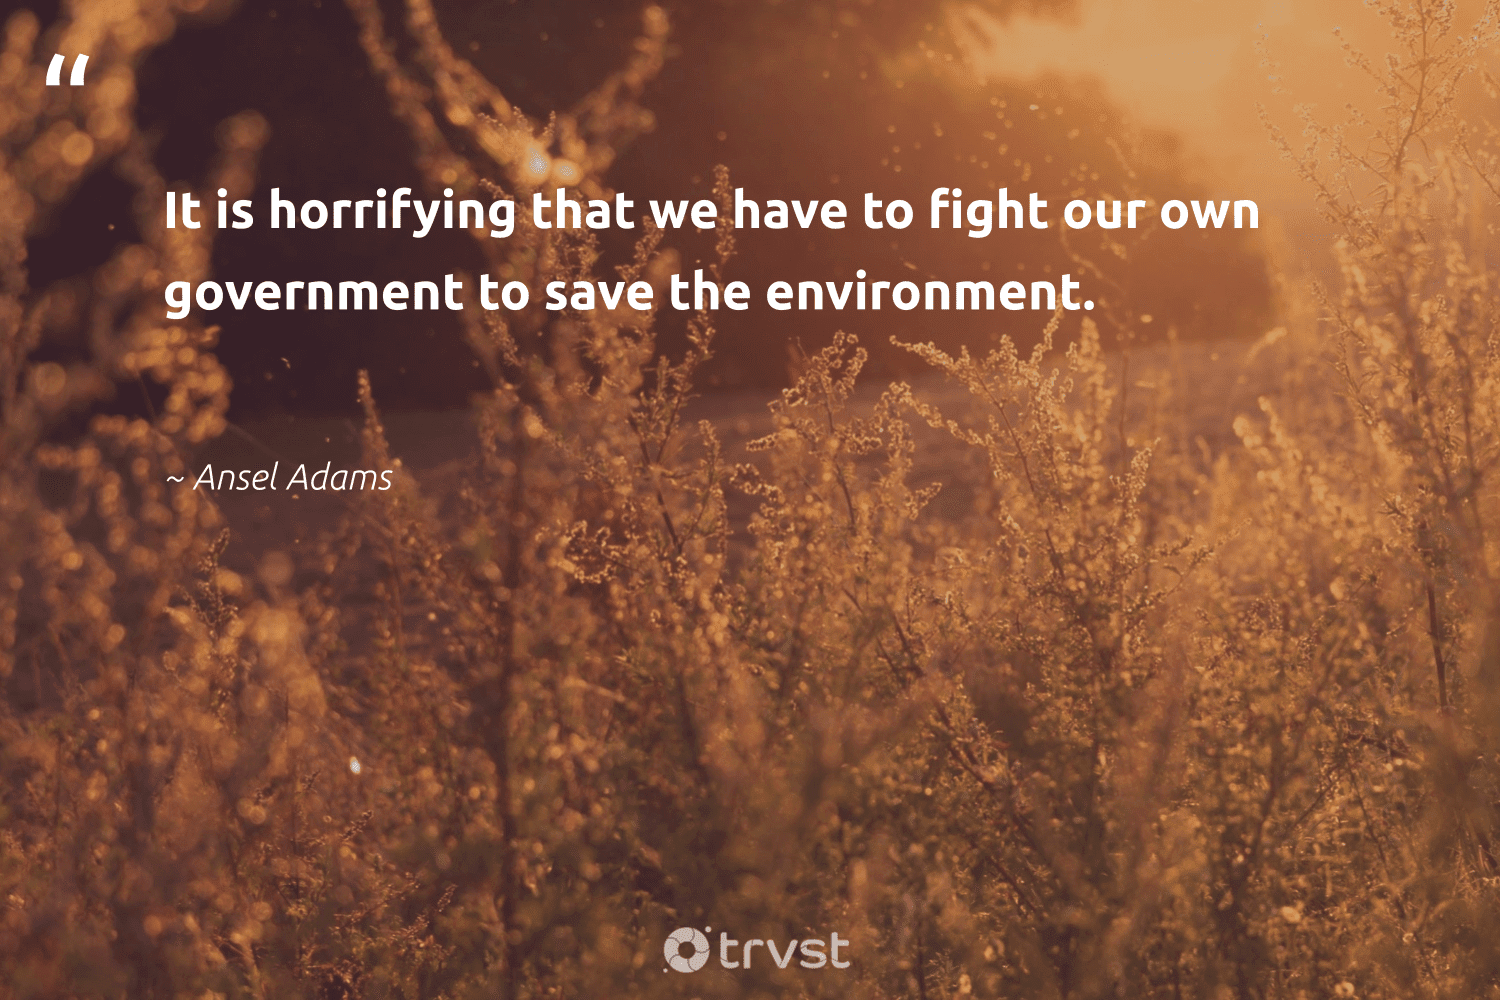 """""""It is horrifying that we have to fight our own government to save the environment.""""  - Ansel Adams #trvst #quotes #environment #planet #earth #naturelovers #beinspired #nature #environmentallyfriendly #sustainable #collectiveaction #conservation"""